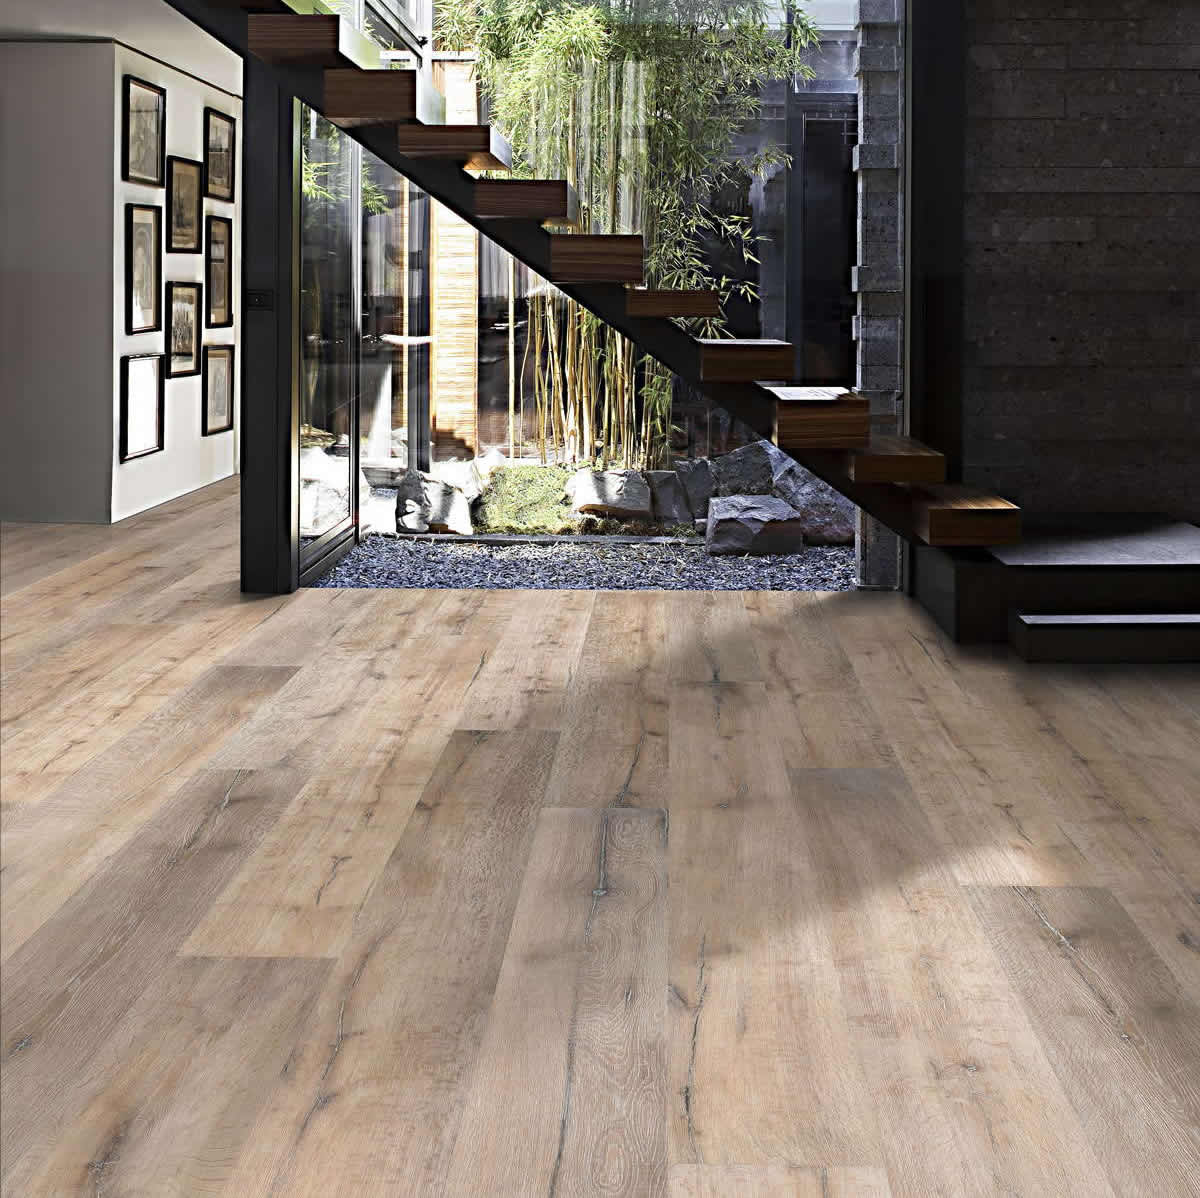 Kahrs Oak Chalet Engineered Wood Flooring - Oak Chalet Engineered Wood Flooring